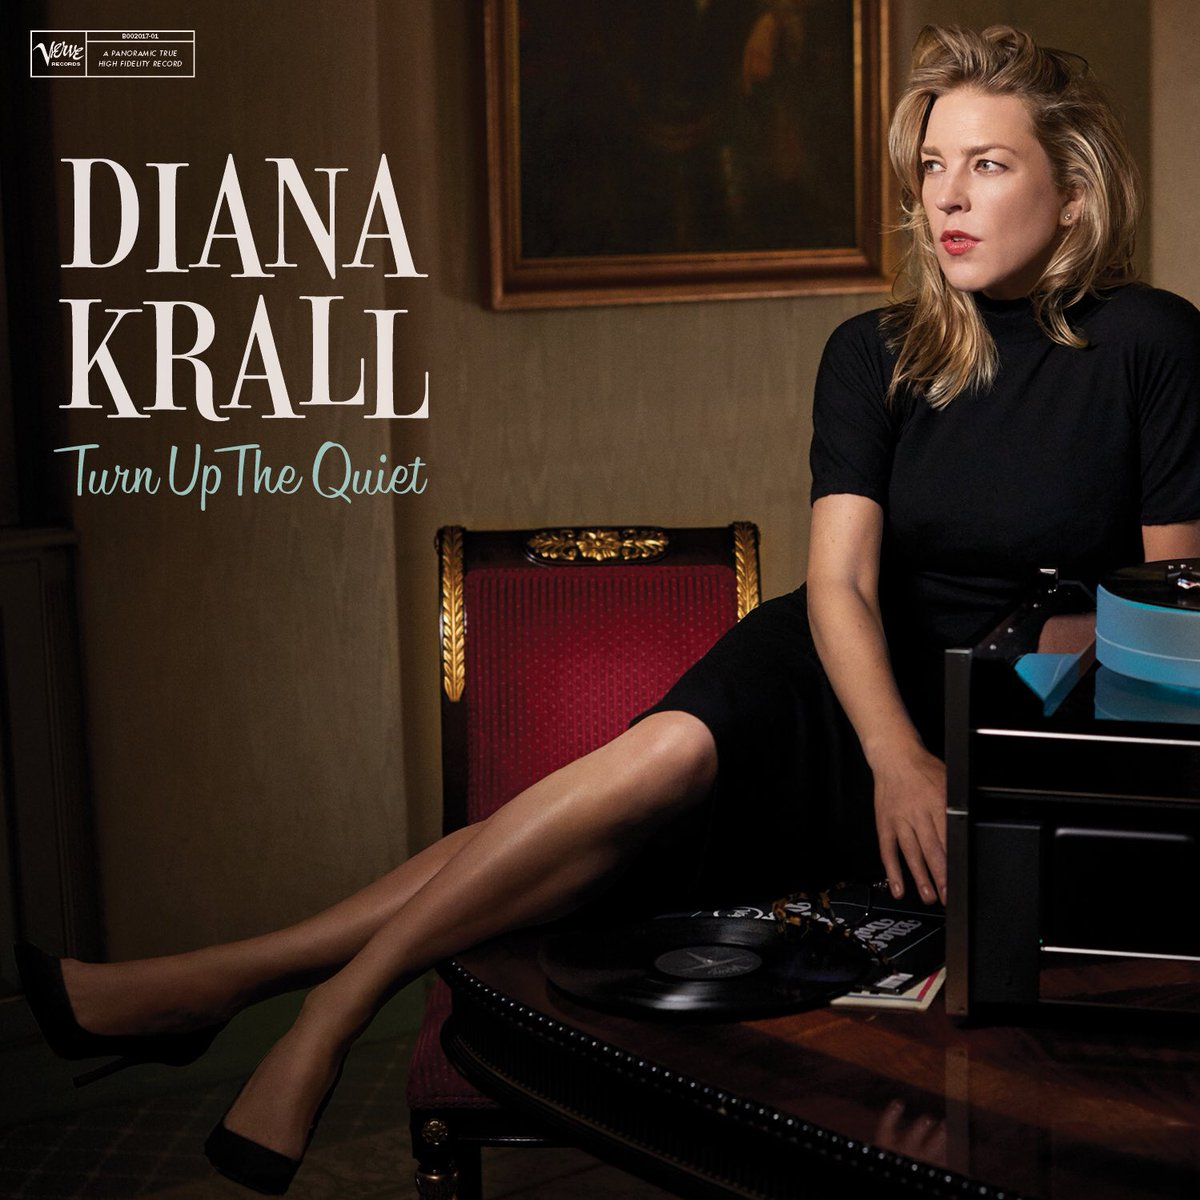 diana krall cry me a river lyricsdiana krall temptation, diana krall слушать, diana krall скачать, diana krall cry me a river, diana krall california dreamin, diana krall - the look of love, diana krall live in paris, diana krall wallflower, diana krall when i look in your eyes, diana krall fly me to the moon, diana krall temptation lyrics, diana krall - s wonderful, diana krall - glad rag doll, diana krall besame mucho скачать, diana krall cry me a river lyrics, diana krall - temptation перевод, diana krall temptation слушать, diana krall wiki, diana krall - quiet nights, diana krall - besame mucho